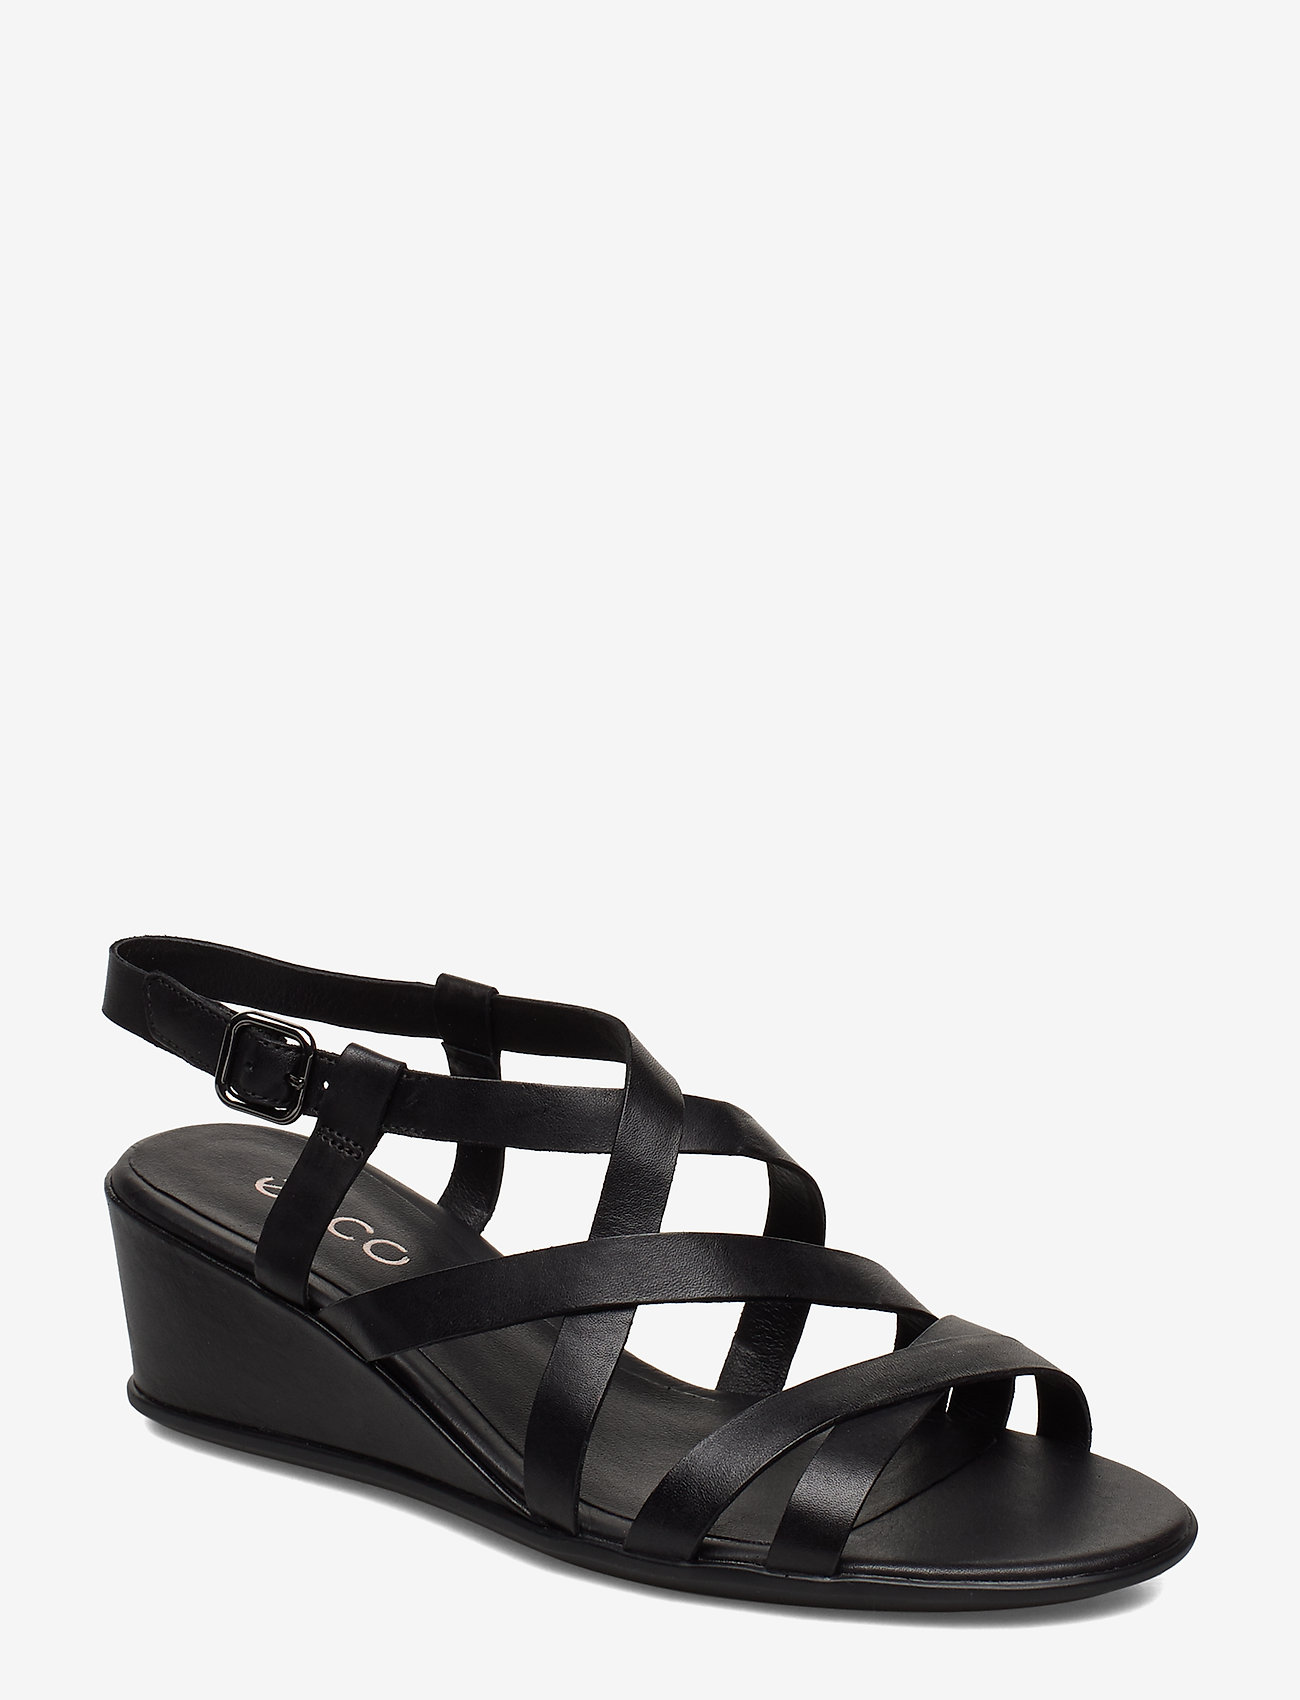 ECCO - SHAPE 35 WEDGE SANDAL - flat sandals - black - 0